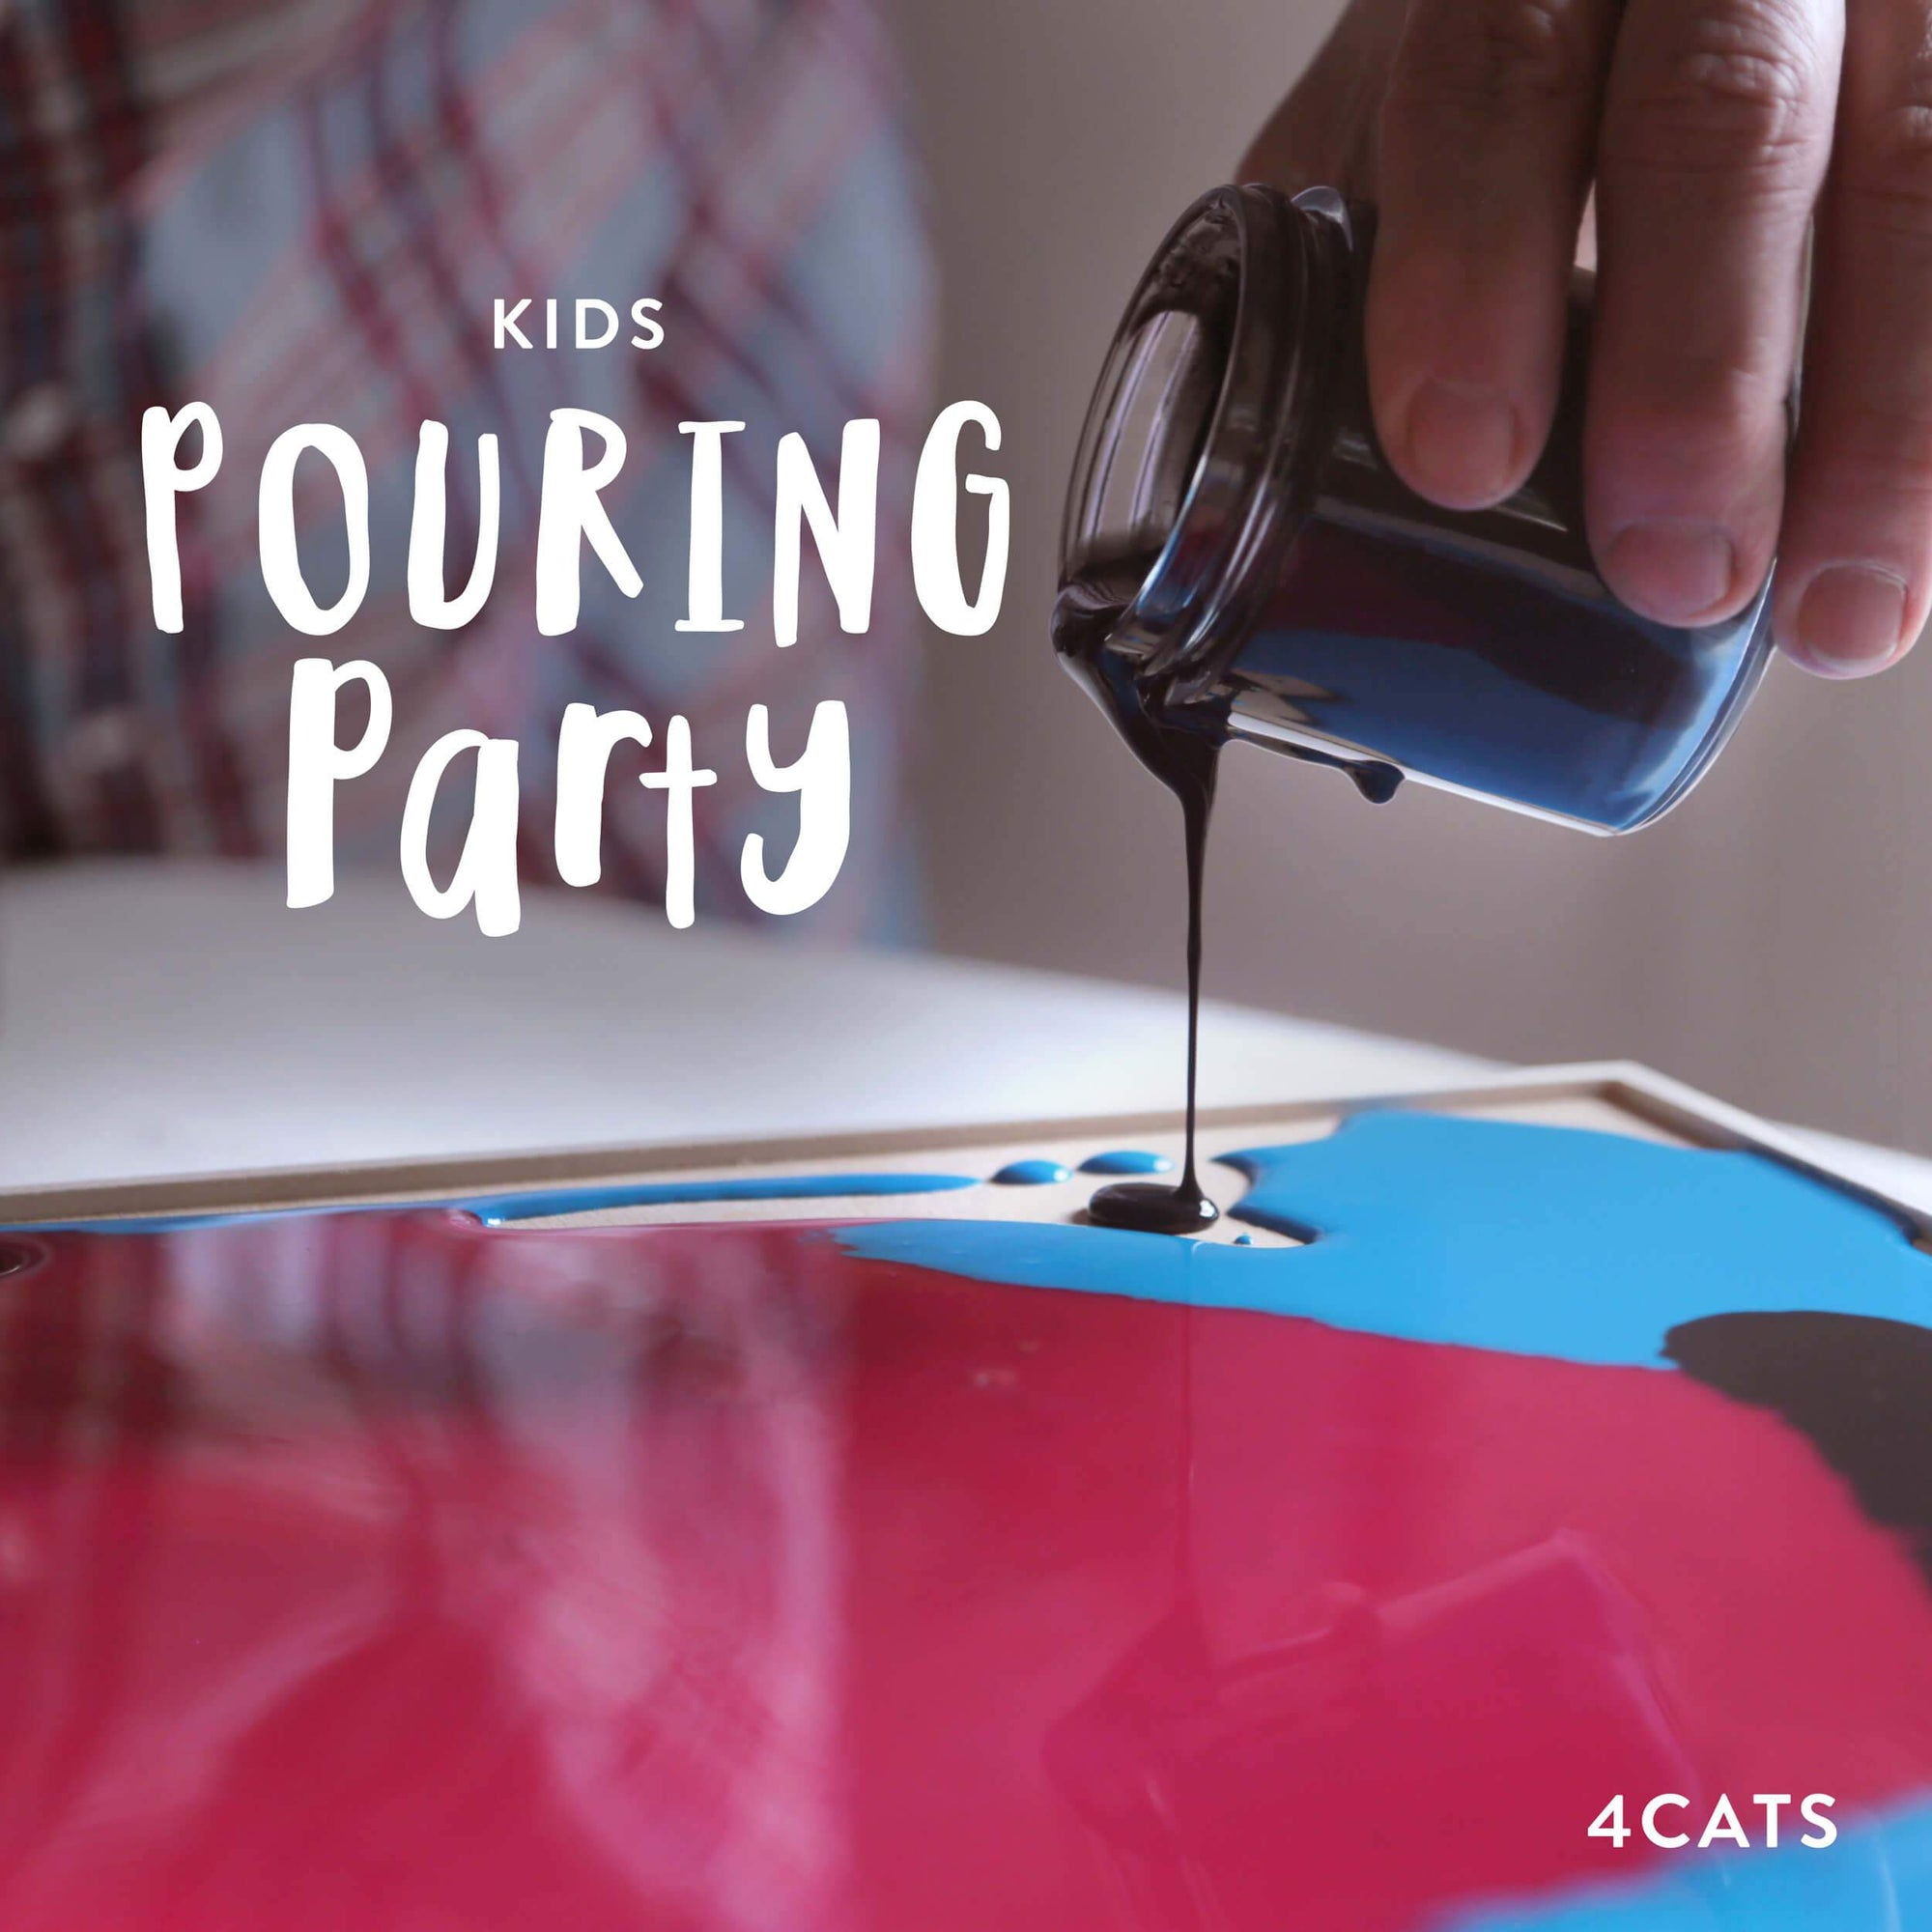 4Cats Kids Pouring Party